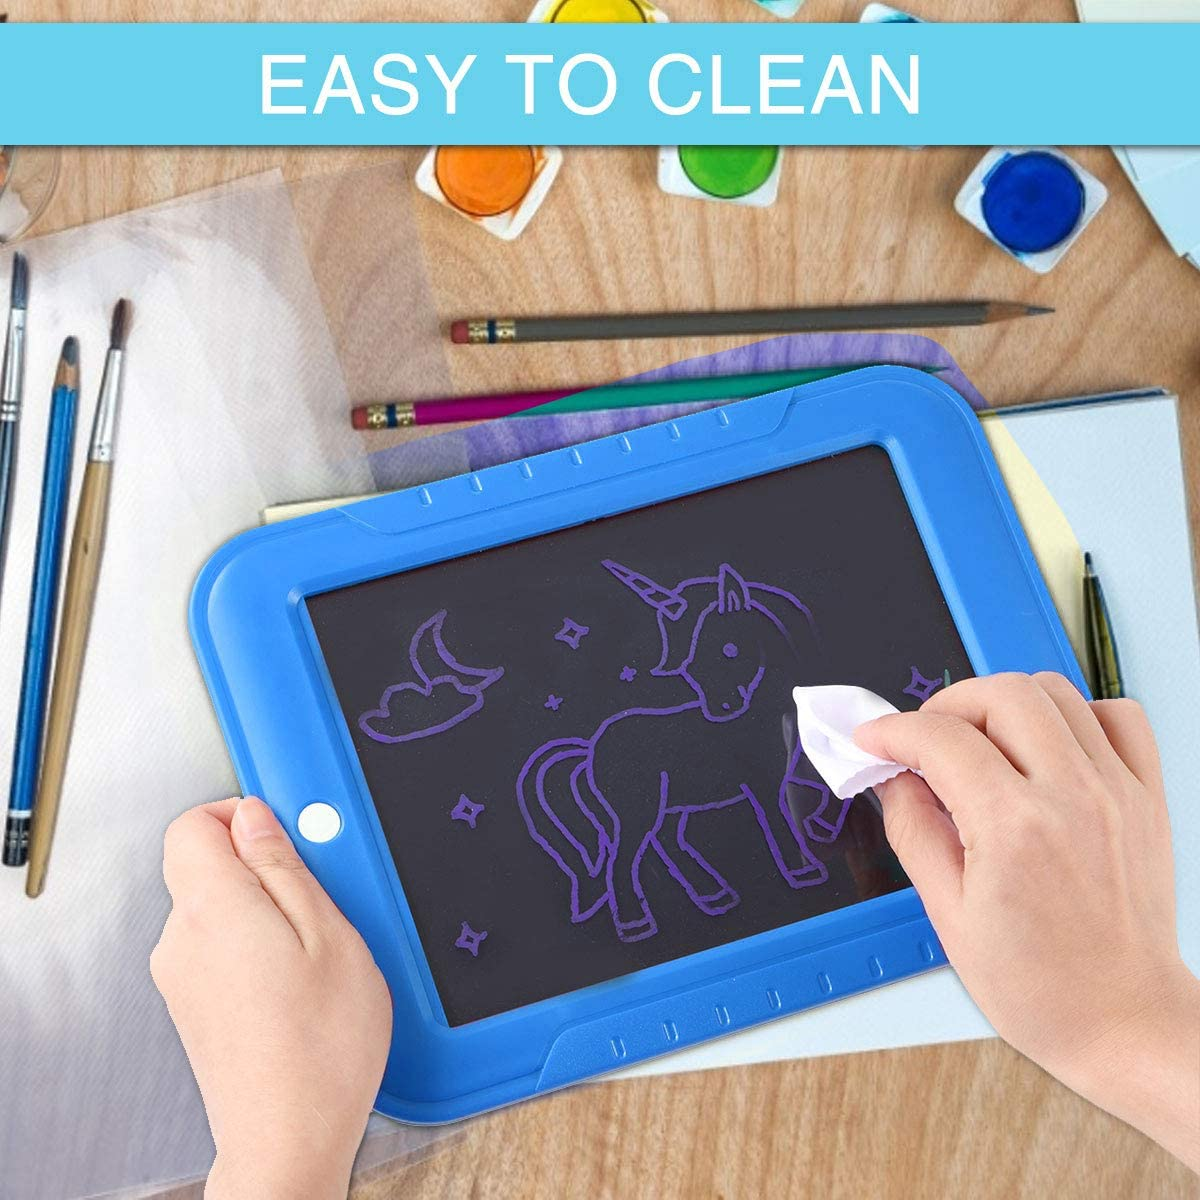 OUTERDO Portable Hi-Tech Drawing Board Doodle,Art,Write,Learning Tablet for Kid Christmas Birthday Party Light Up Board Magic LED Writing Wipes Clean 3 Pens 15 Stencil 8 Light Effect Sketch,Create